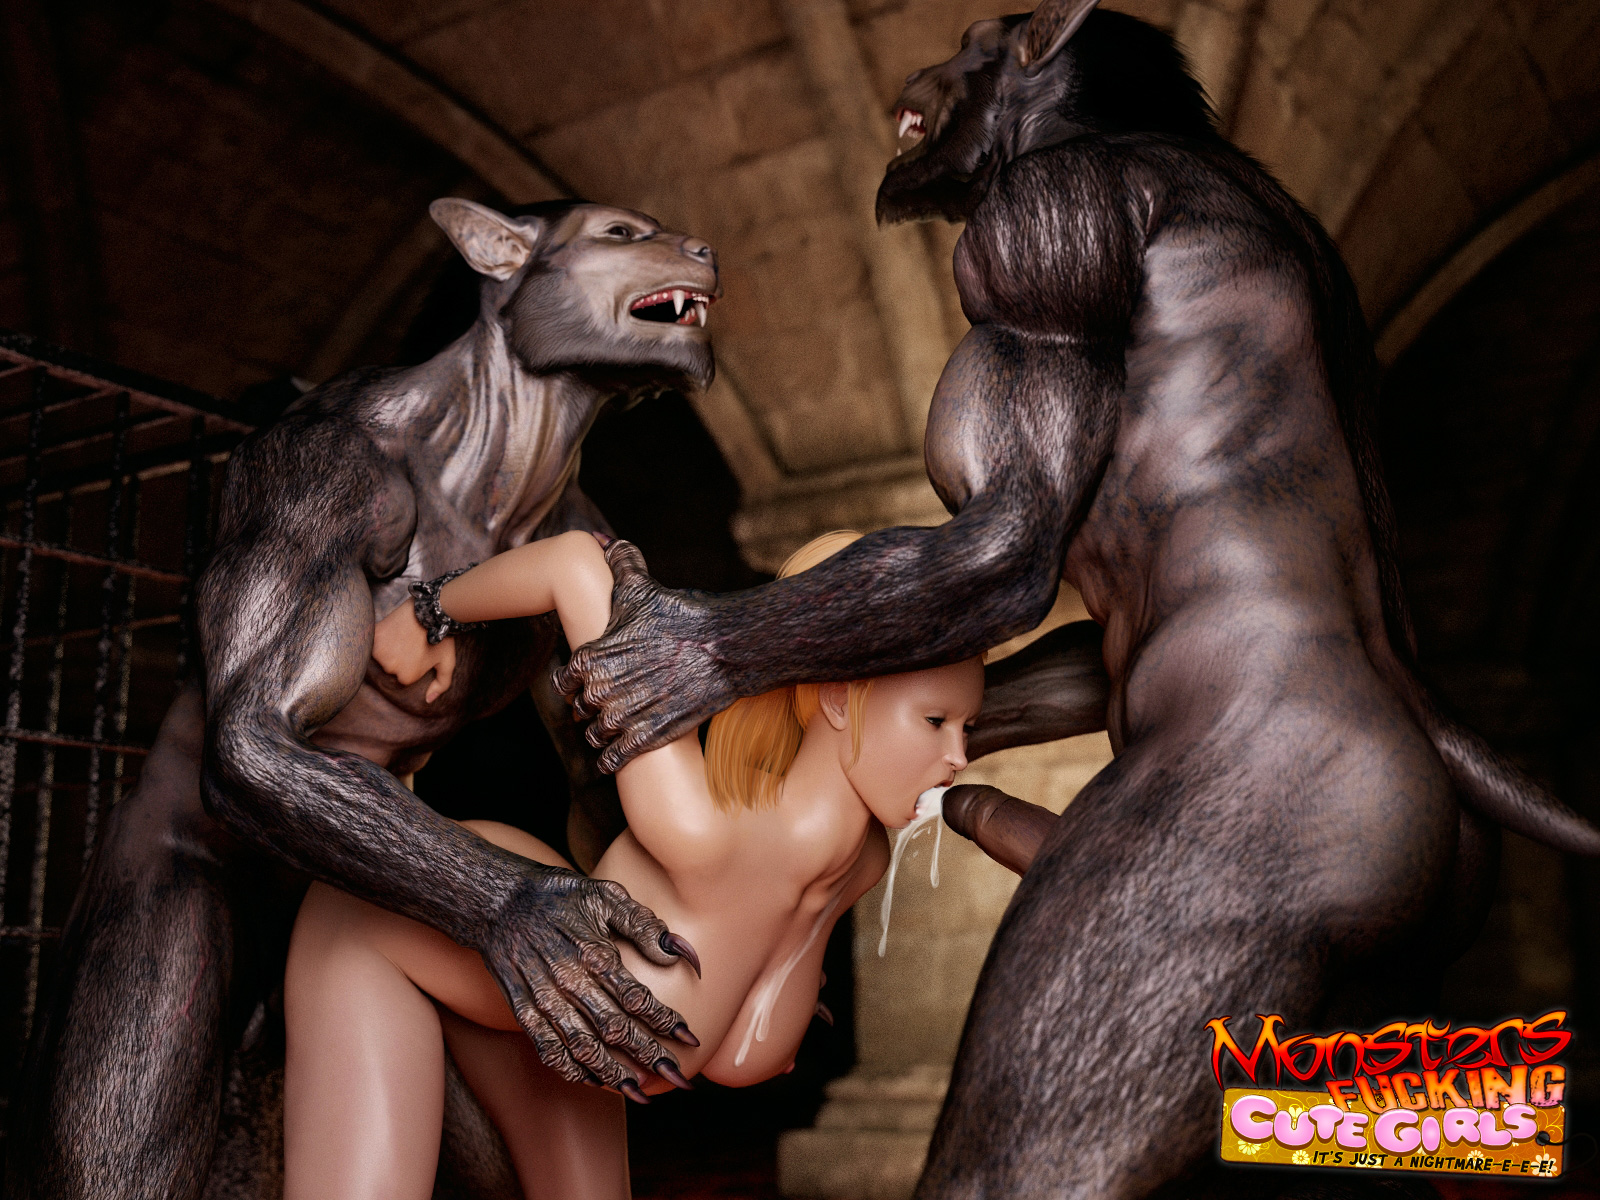 Free 3gp monster cartoon fucking video download xxx image